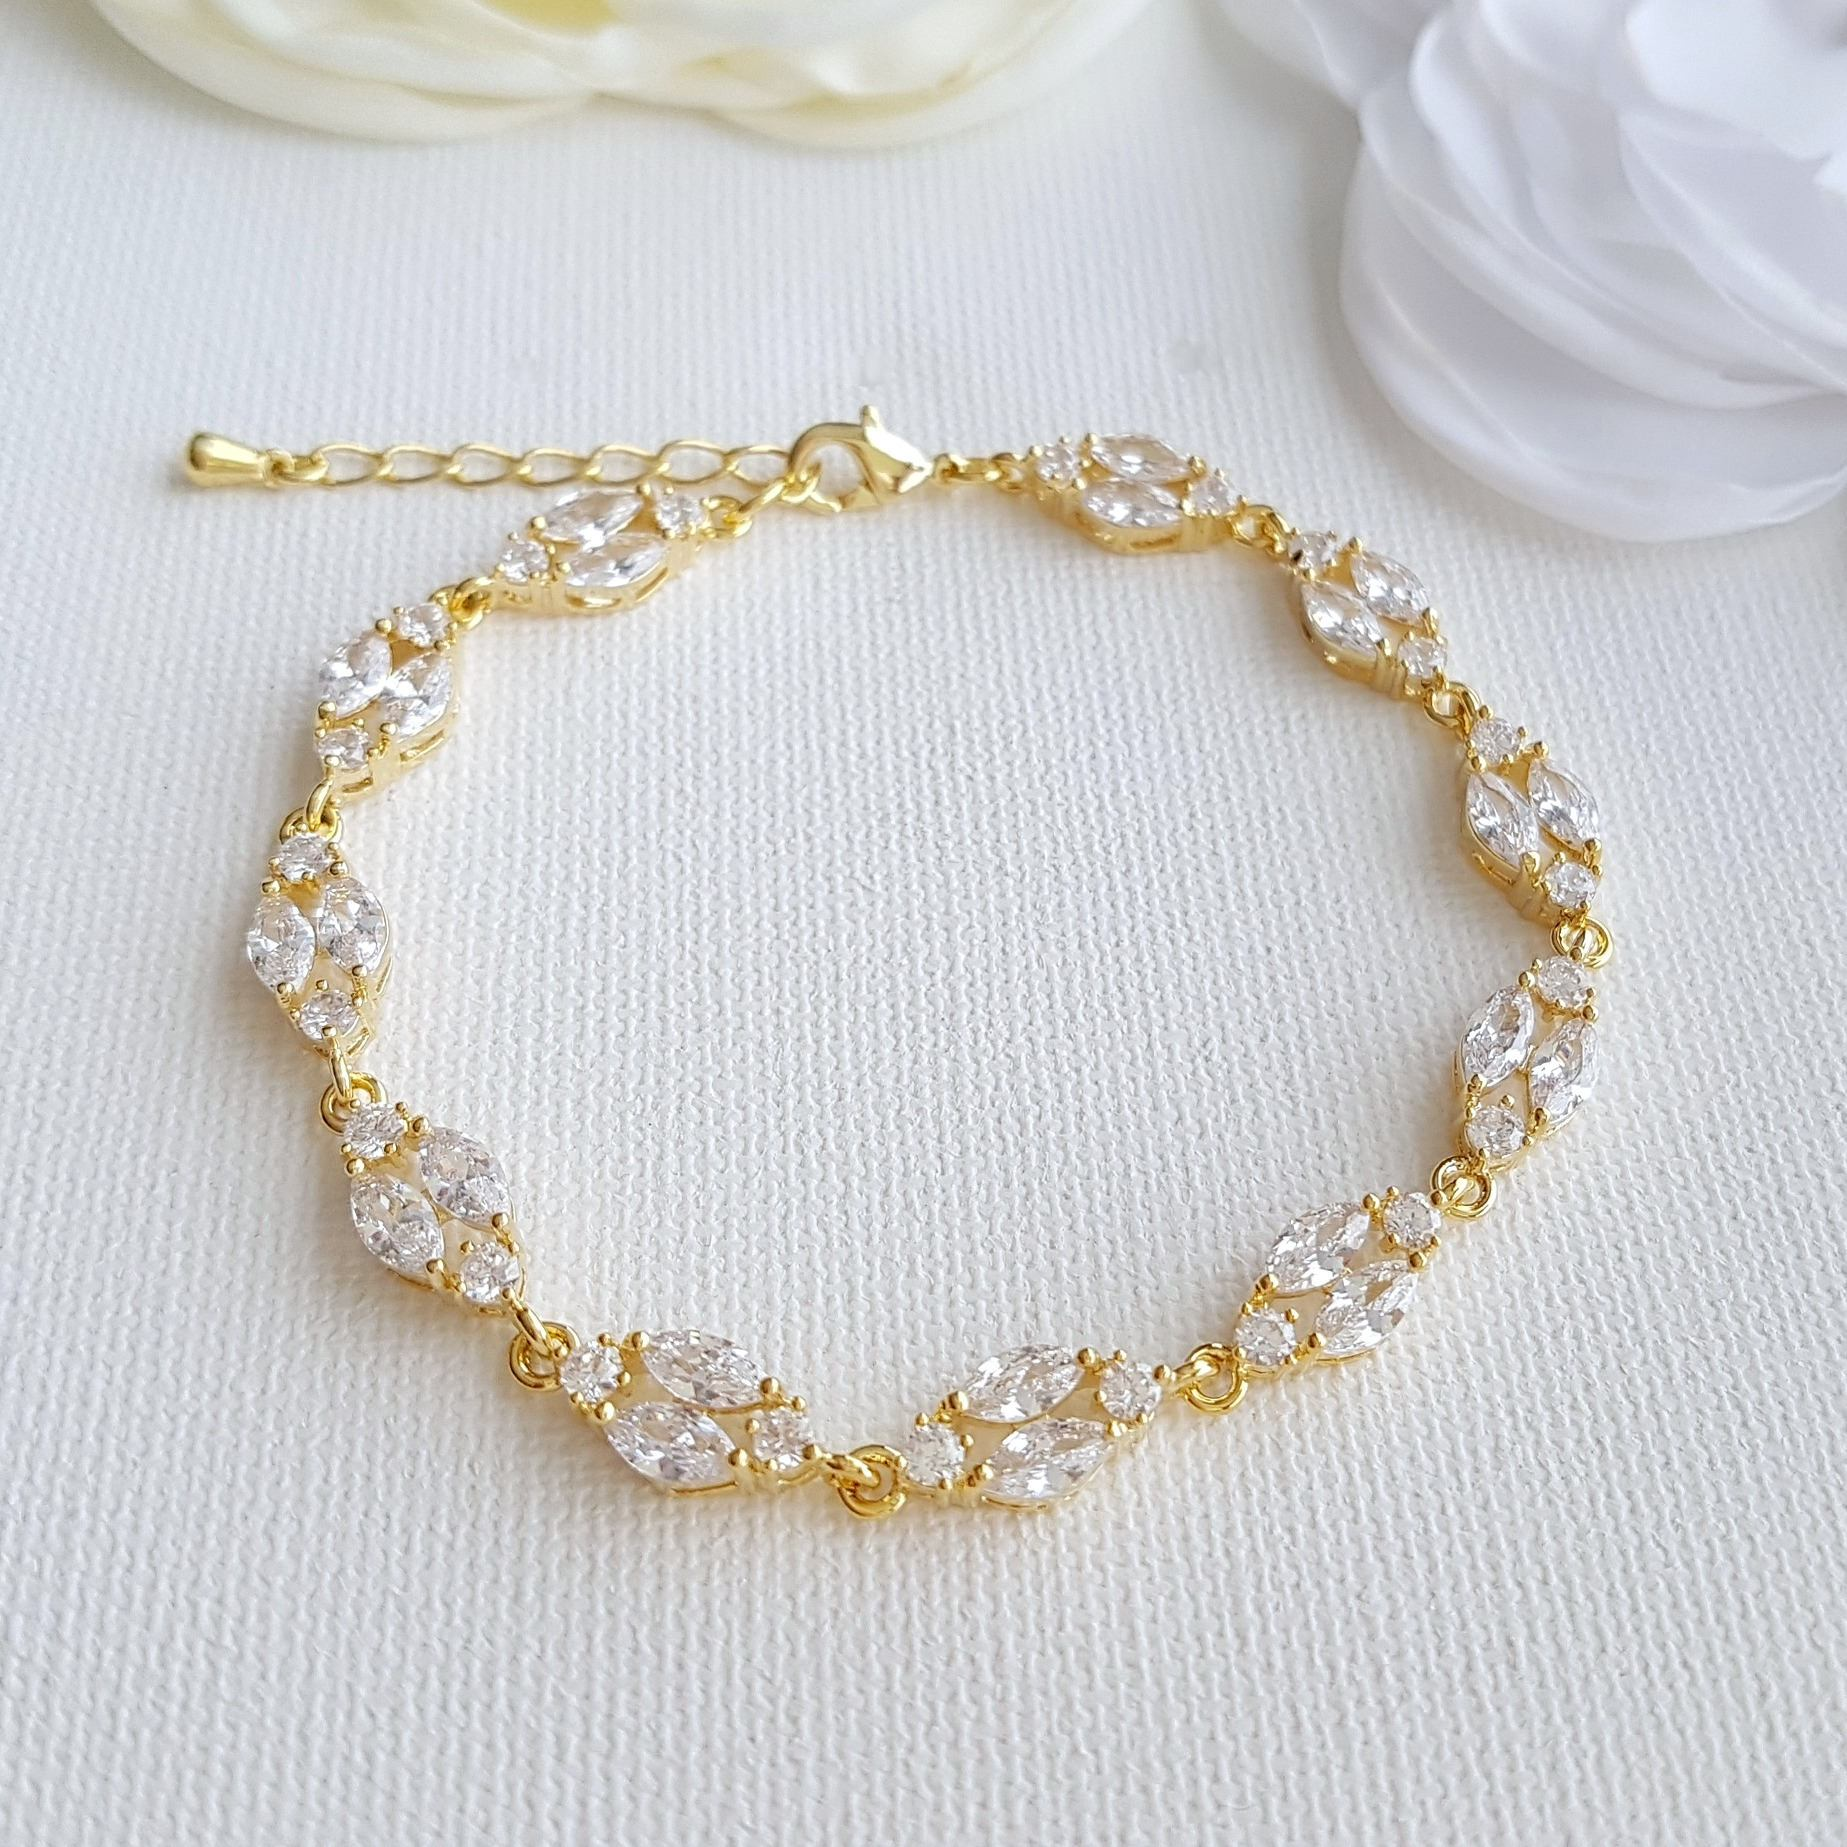 Gold Crystal Wedding Bracelet Rose Gold Bridal Bracelet Marquise CZ Bracelet Gold Tennis Bracelet Wedding Bridal Jewelry, Hayley